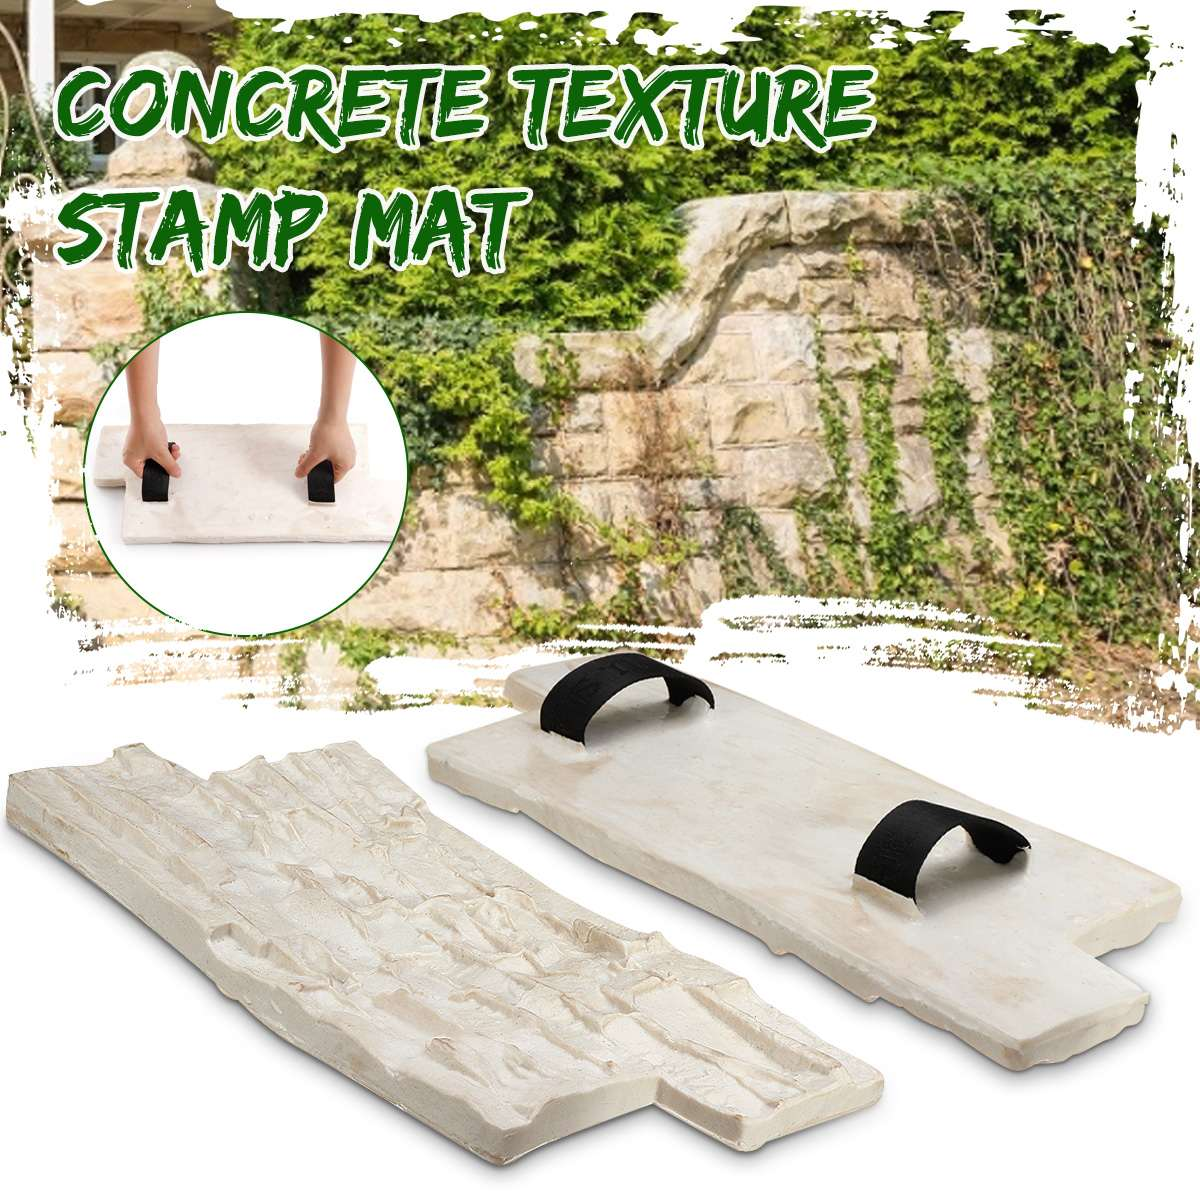 Polyurethane Molds For Concrete Garden House Decor Texture Wall Floors Molds Cement Plaster Stamps Model Molds Rubber Molds